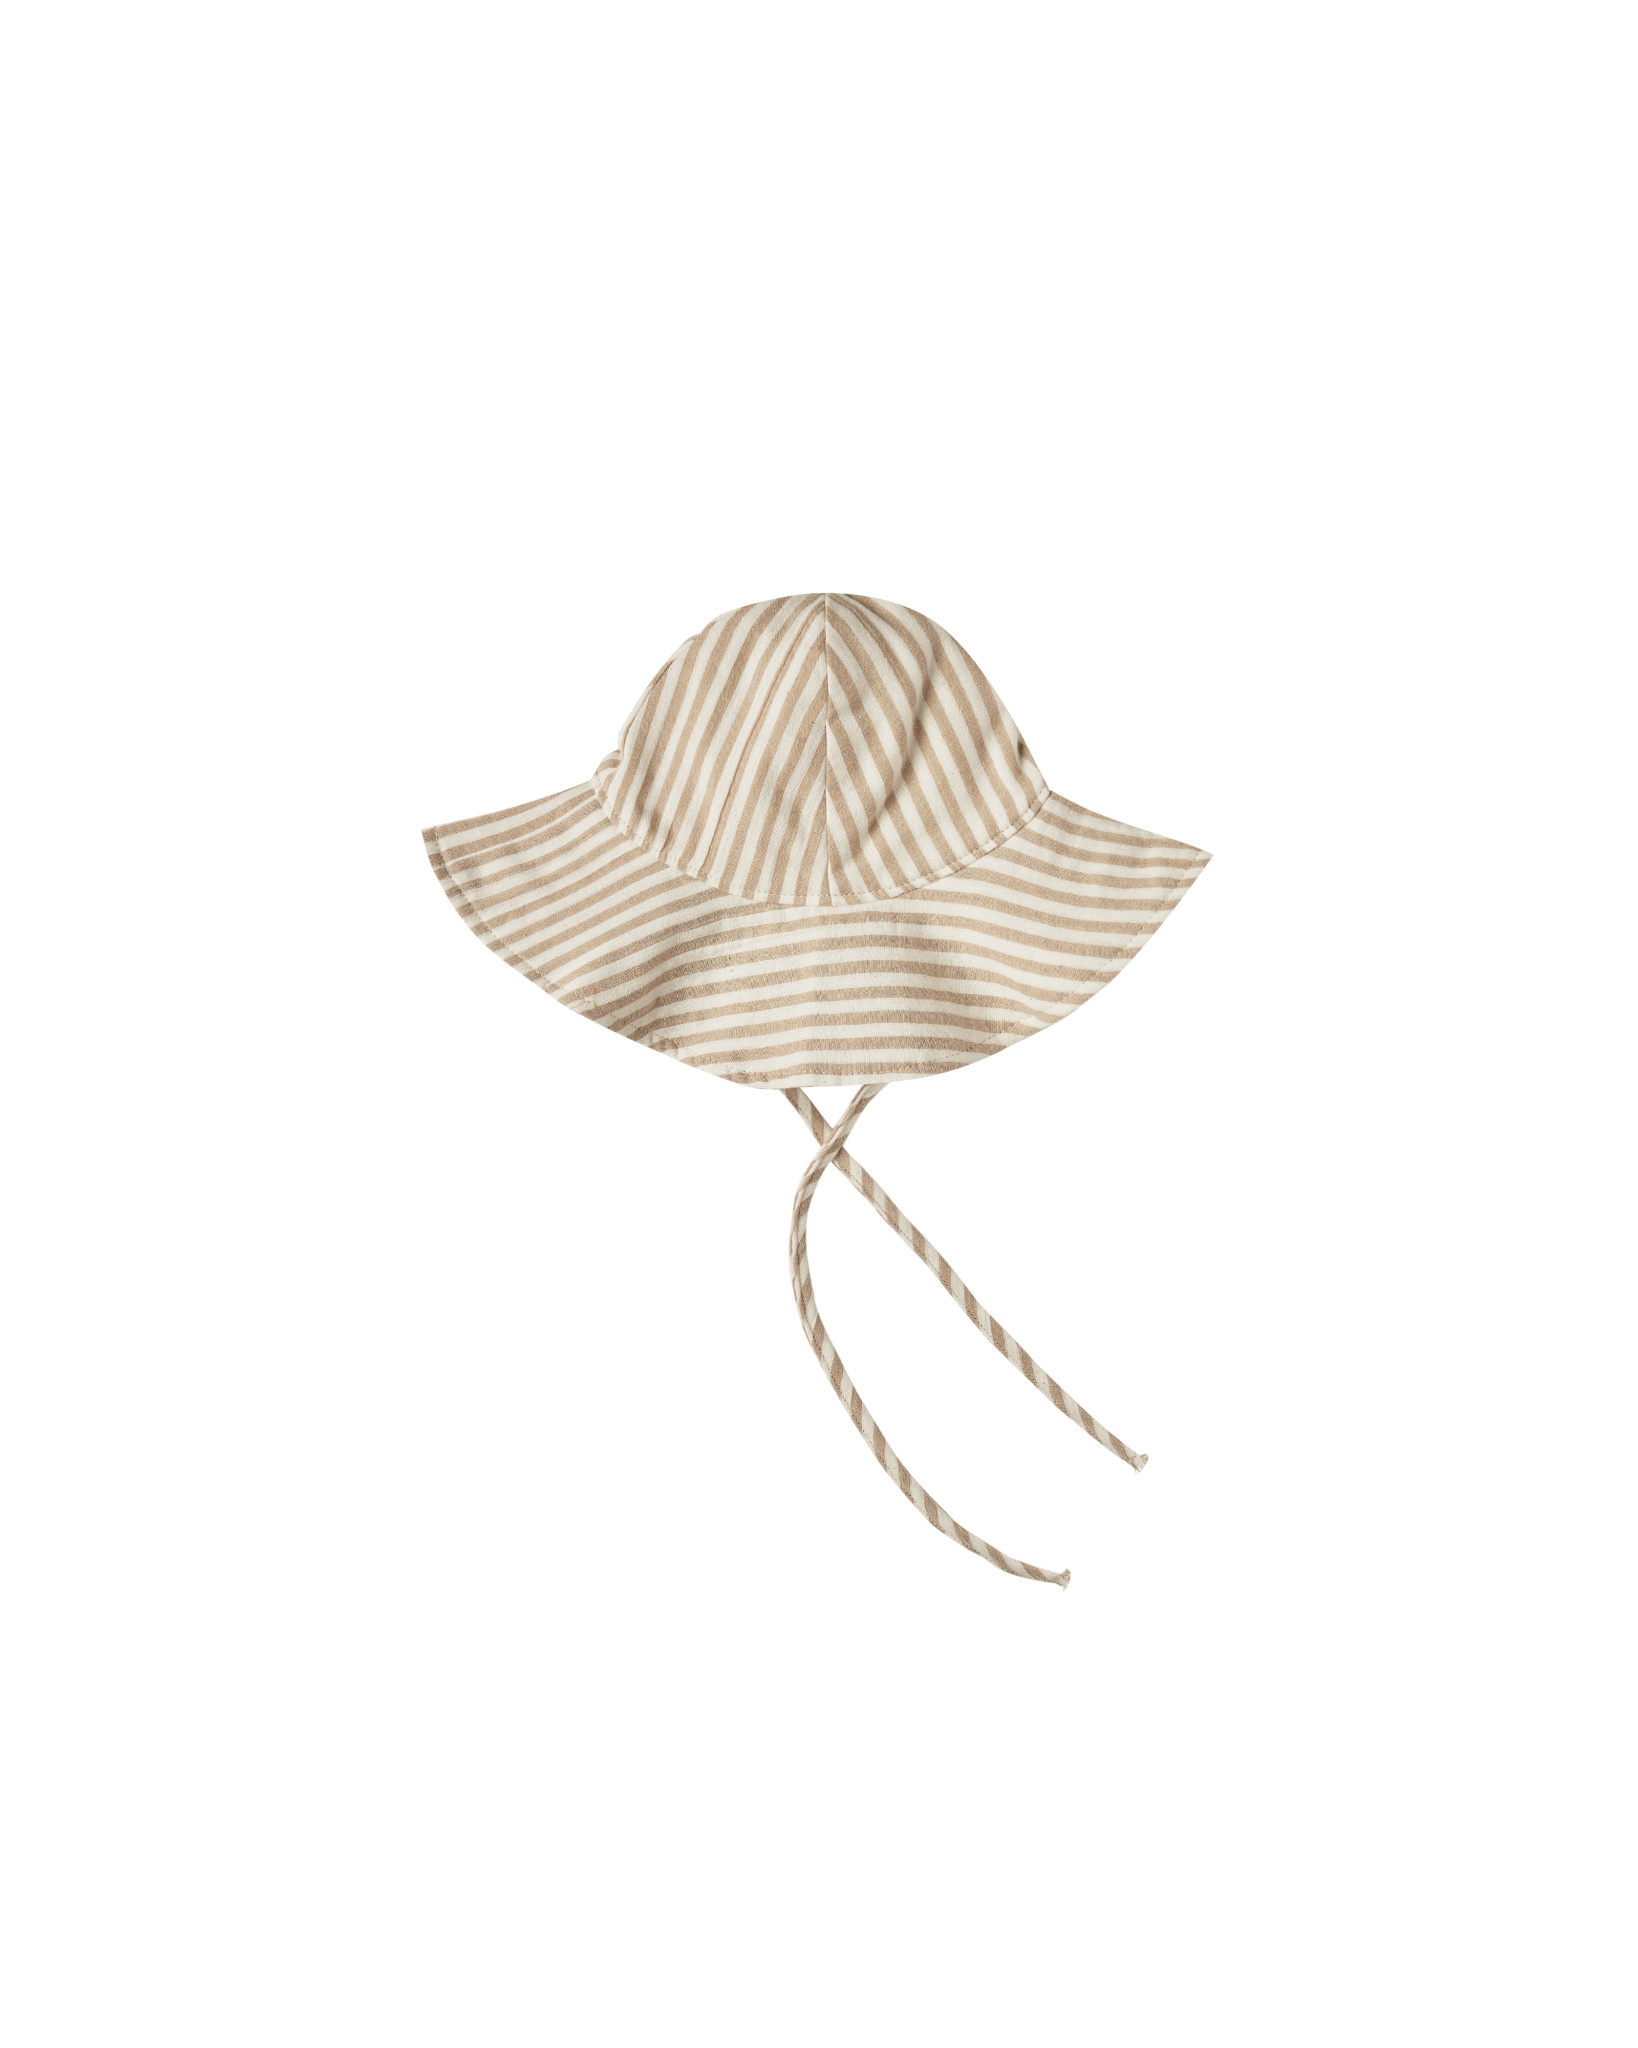 Rylee & Cru Floppy Hat - Stripe